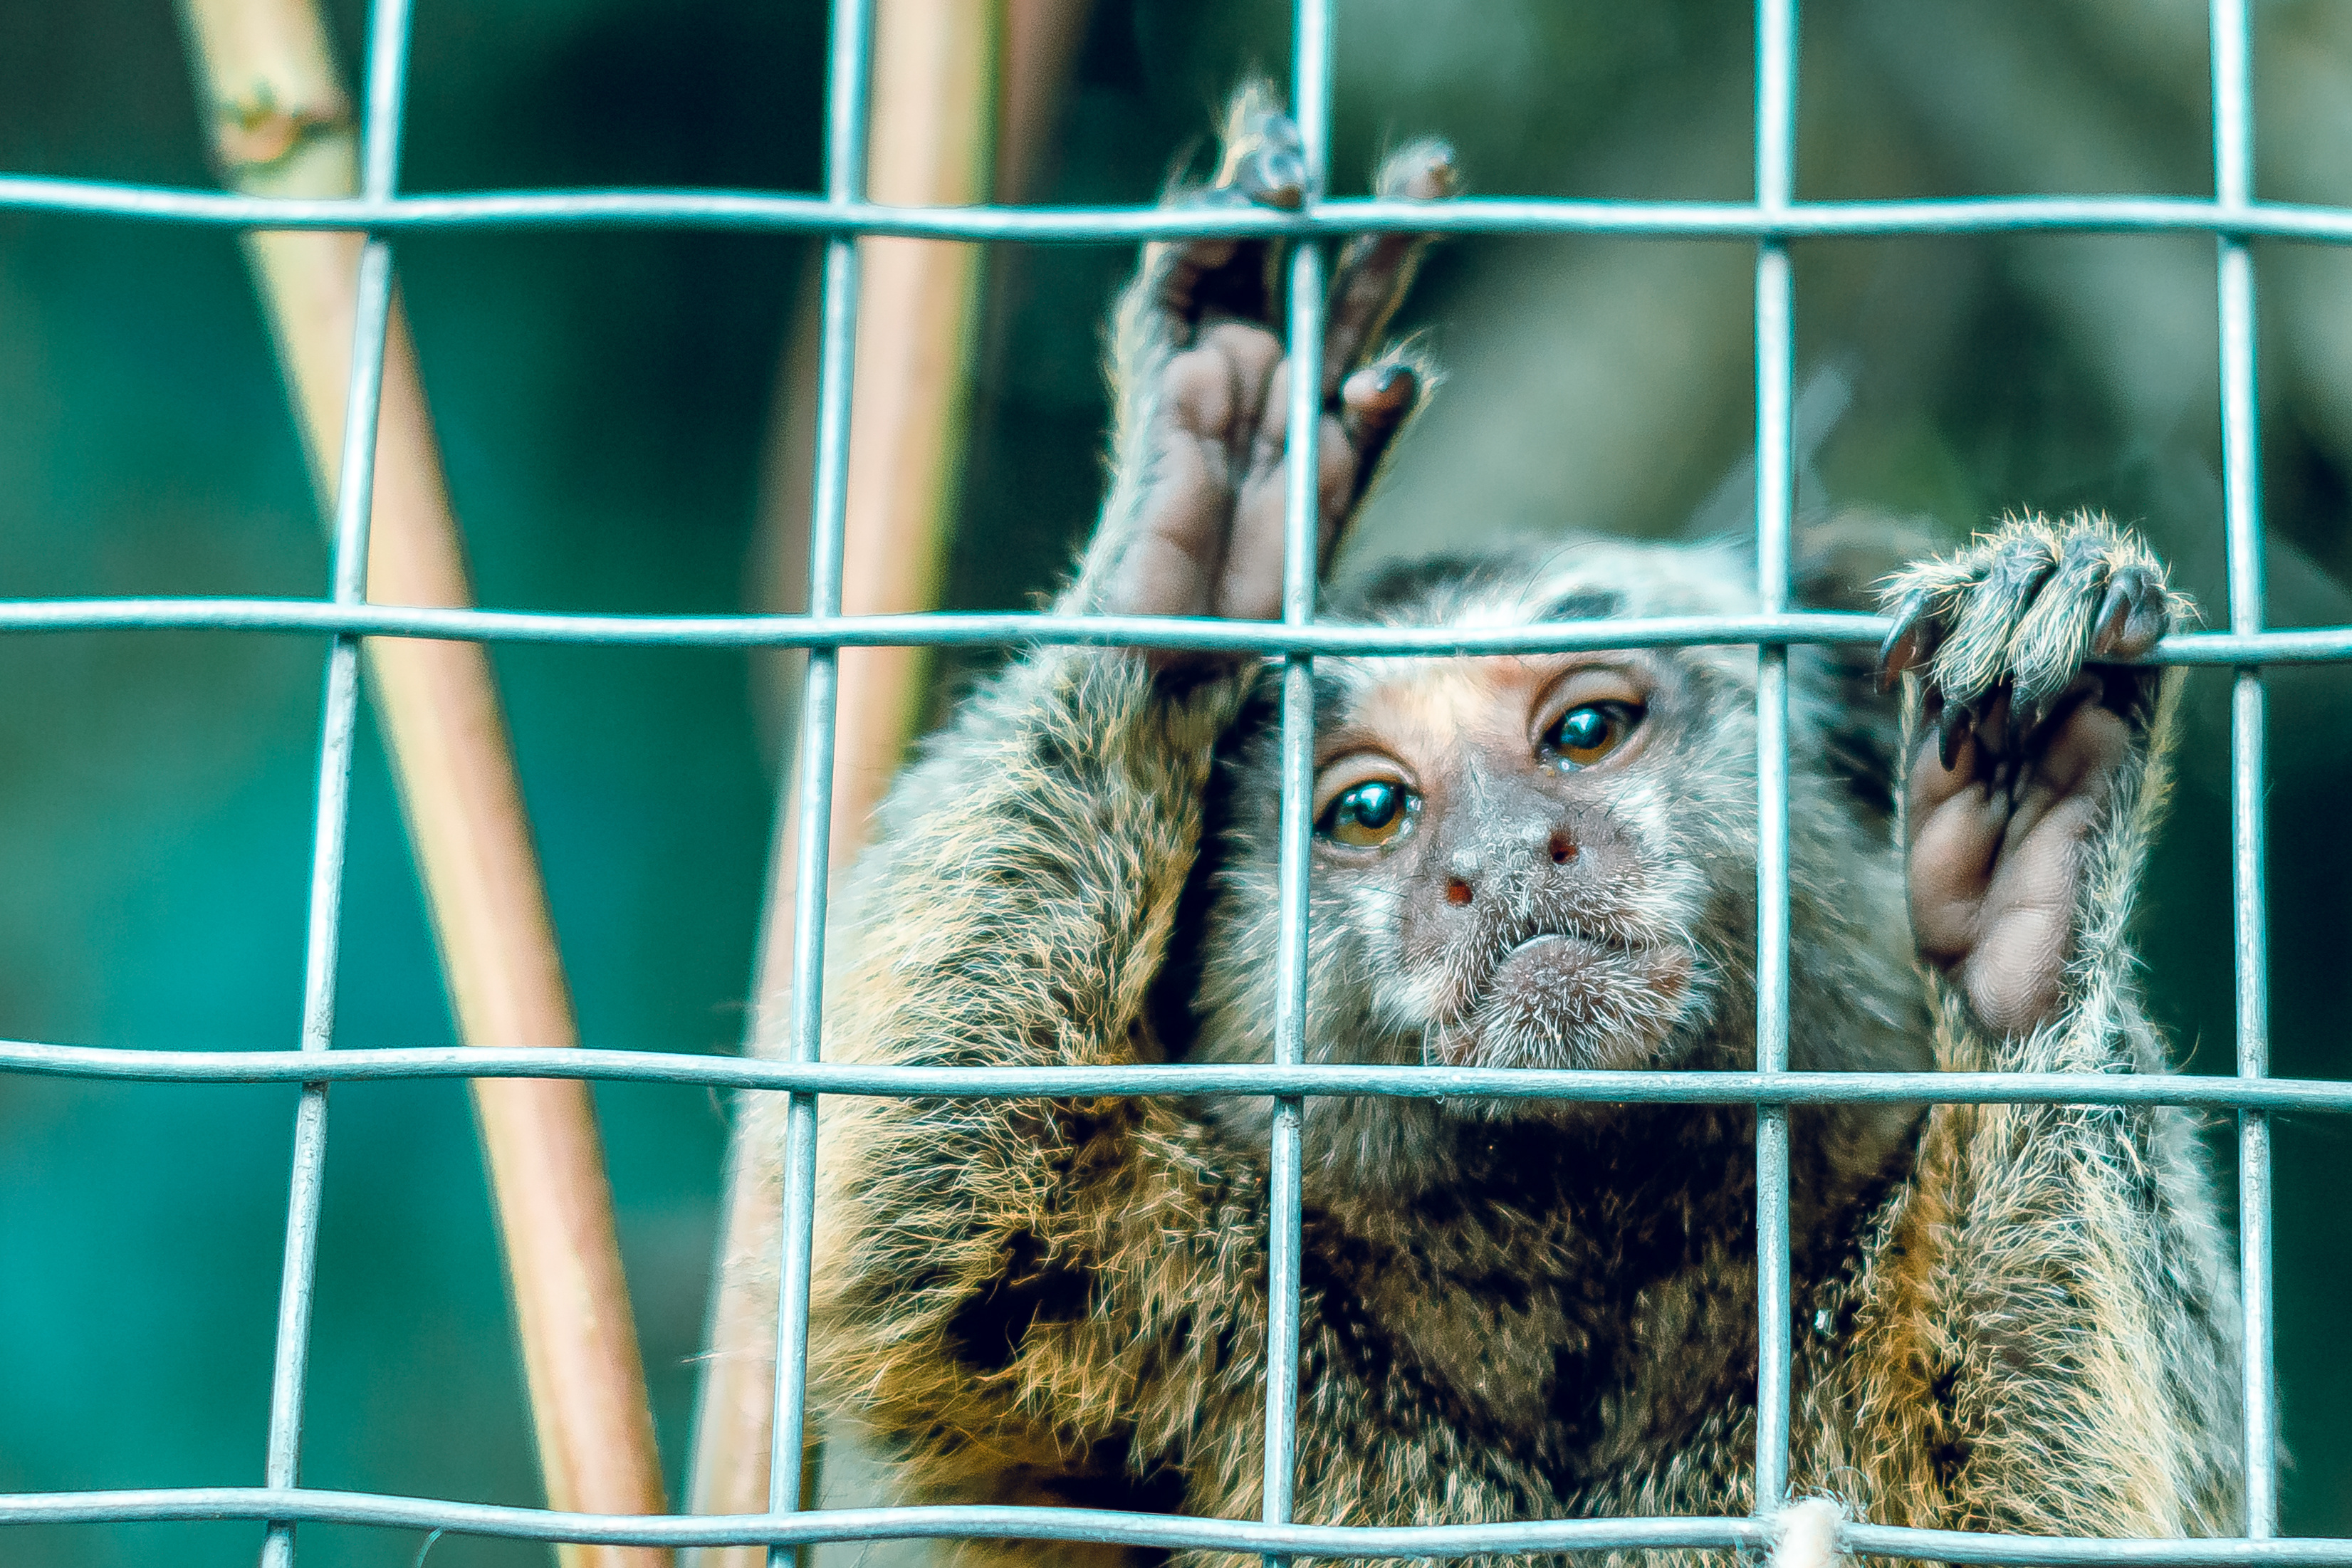 A monkey behind bars in a cage.